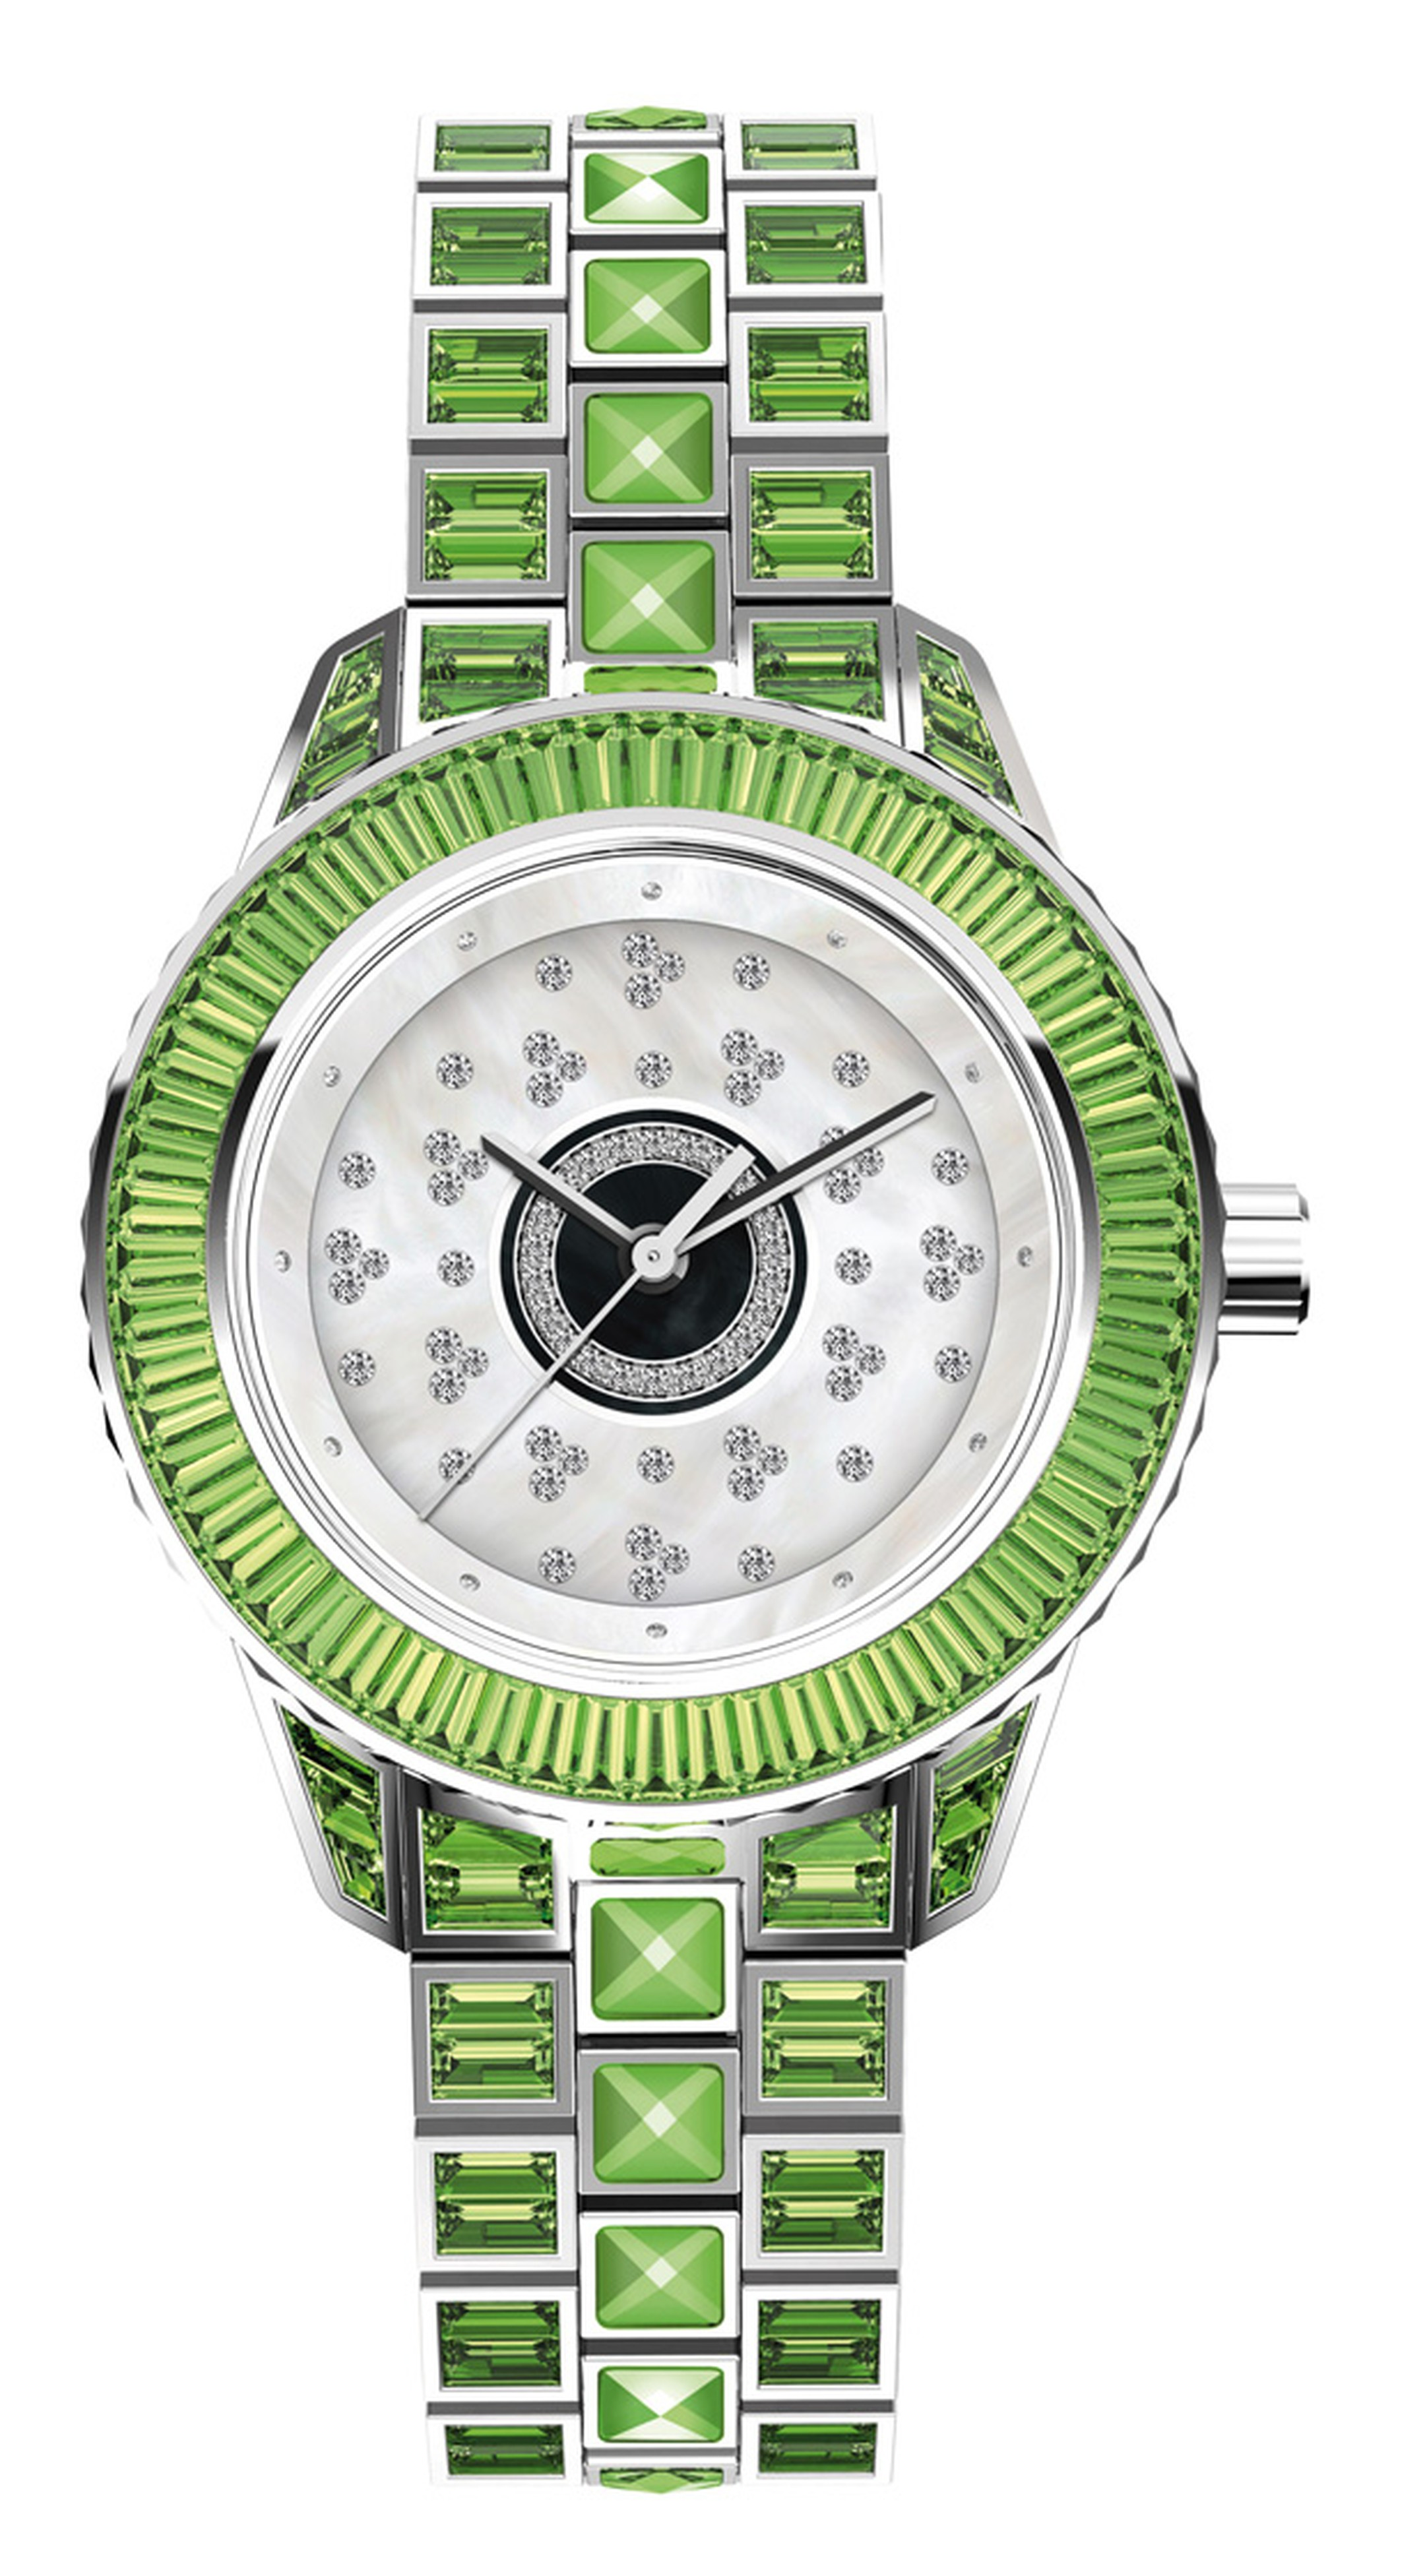 Dior Christal Haute Couture Passage watch